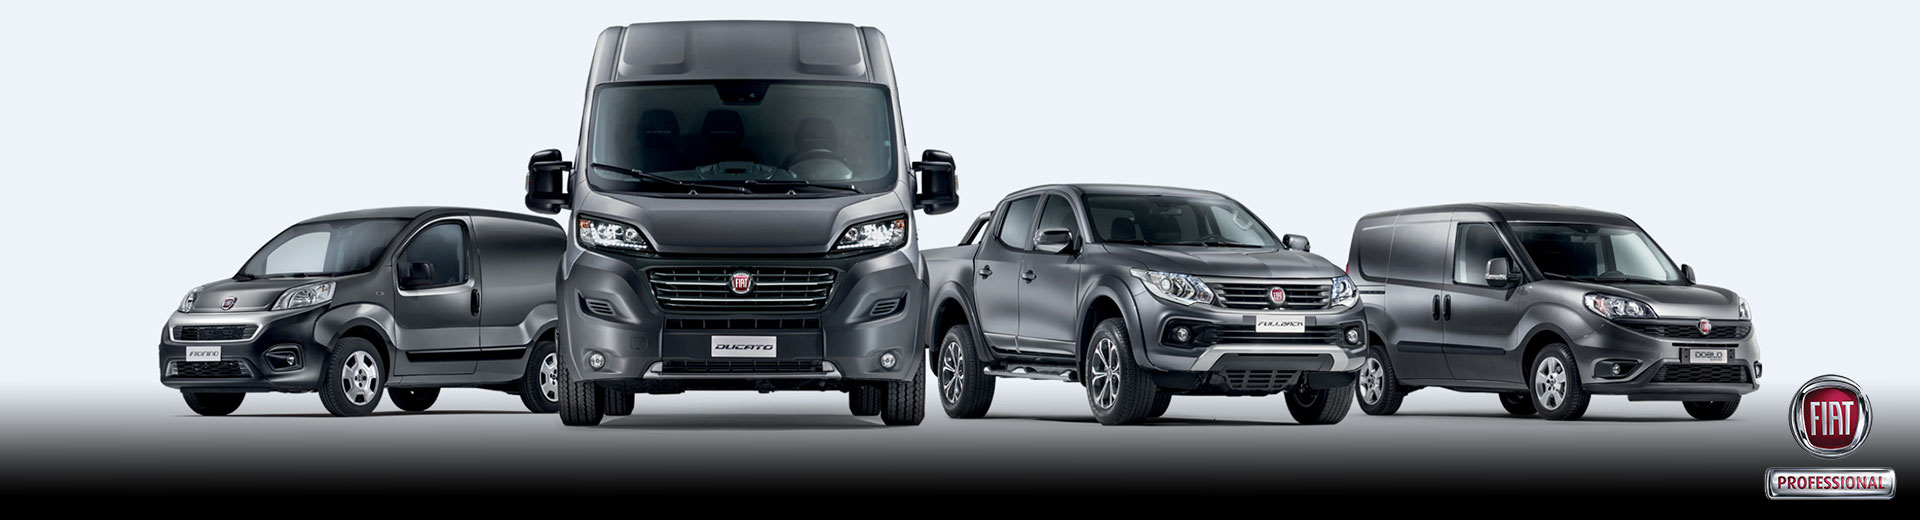 Fiat Professional New Banner